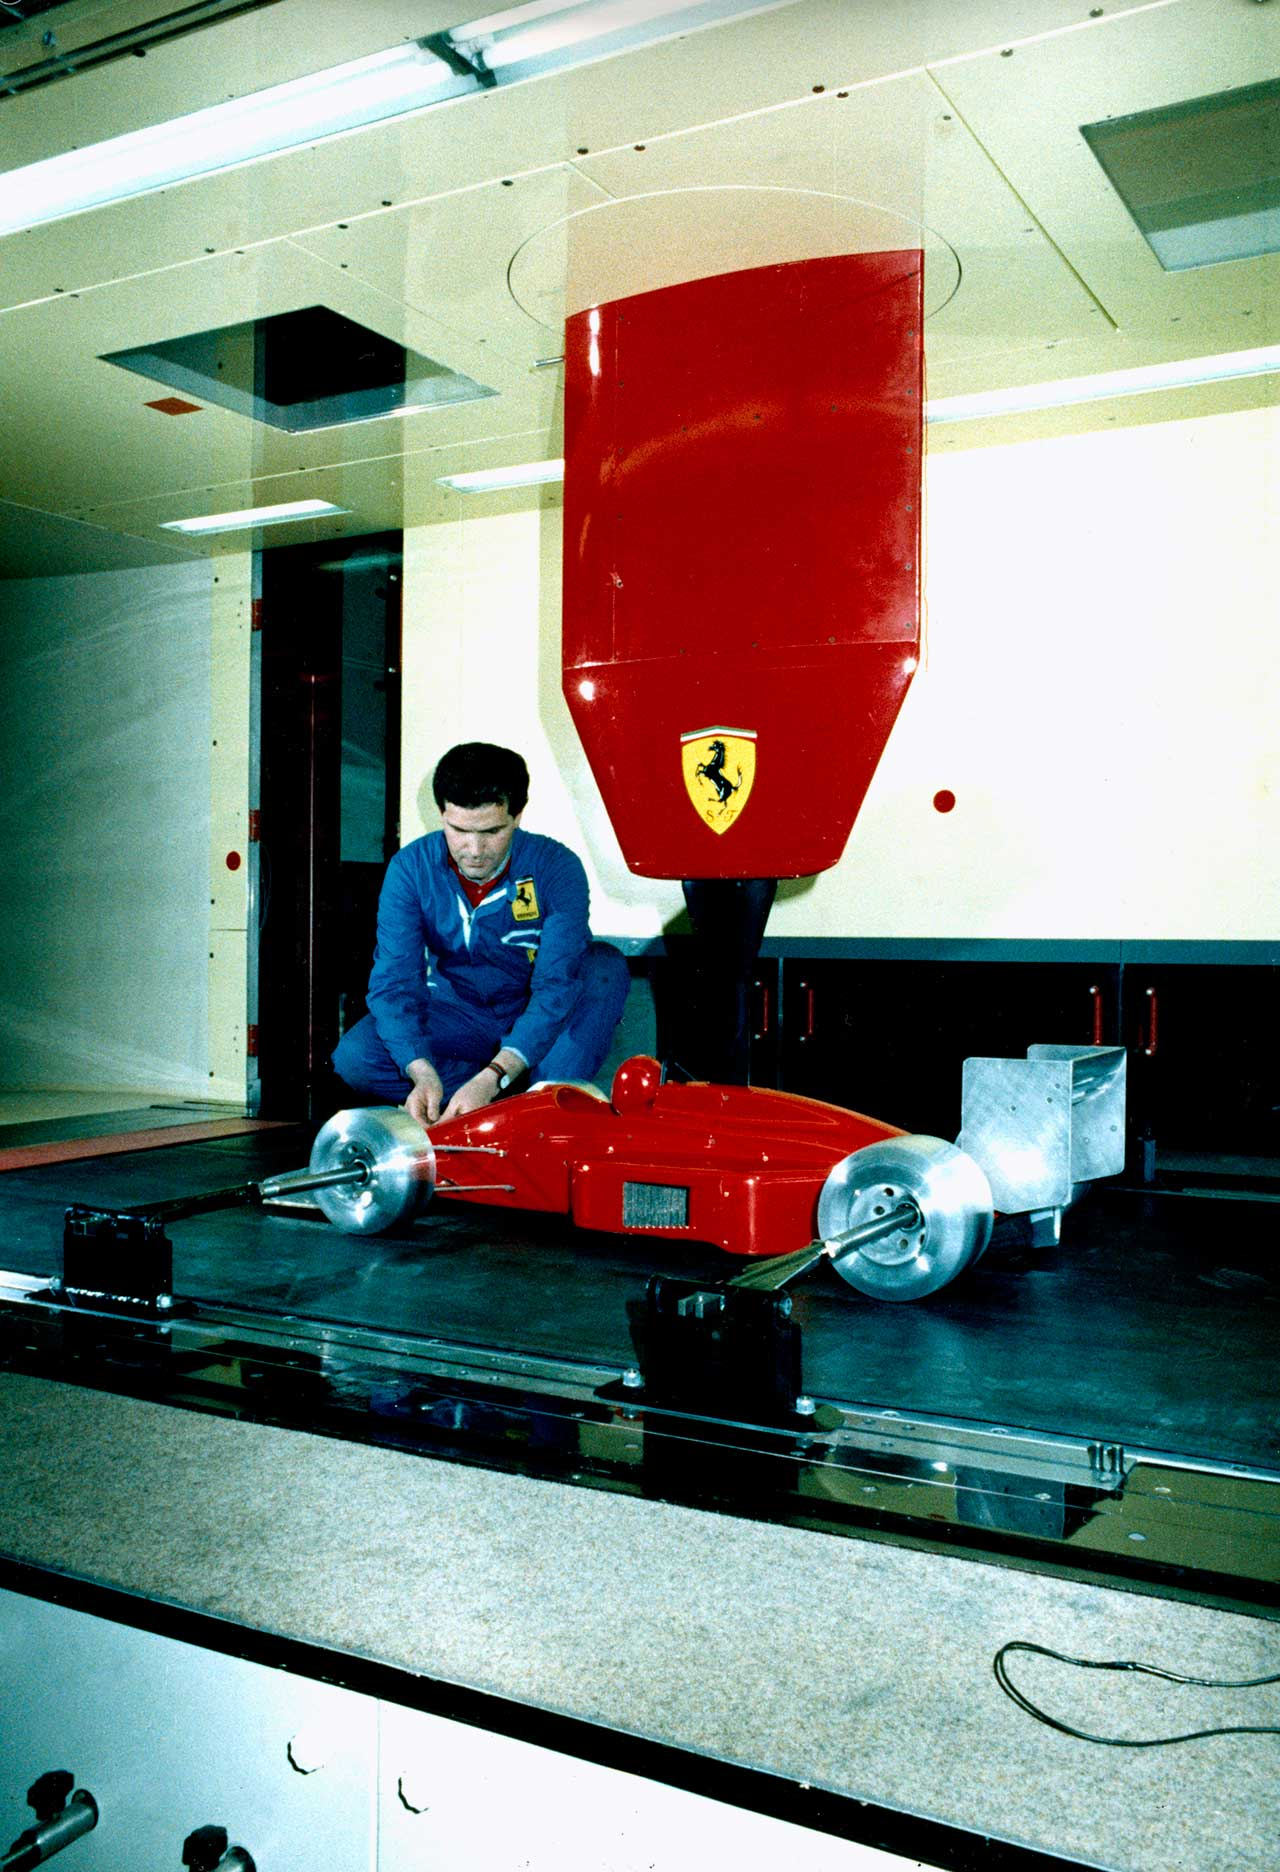 The new Wind Gallery for Aerodynamic Tests with 1-3 scale models.Photo courtesy of Ferrari.